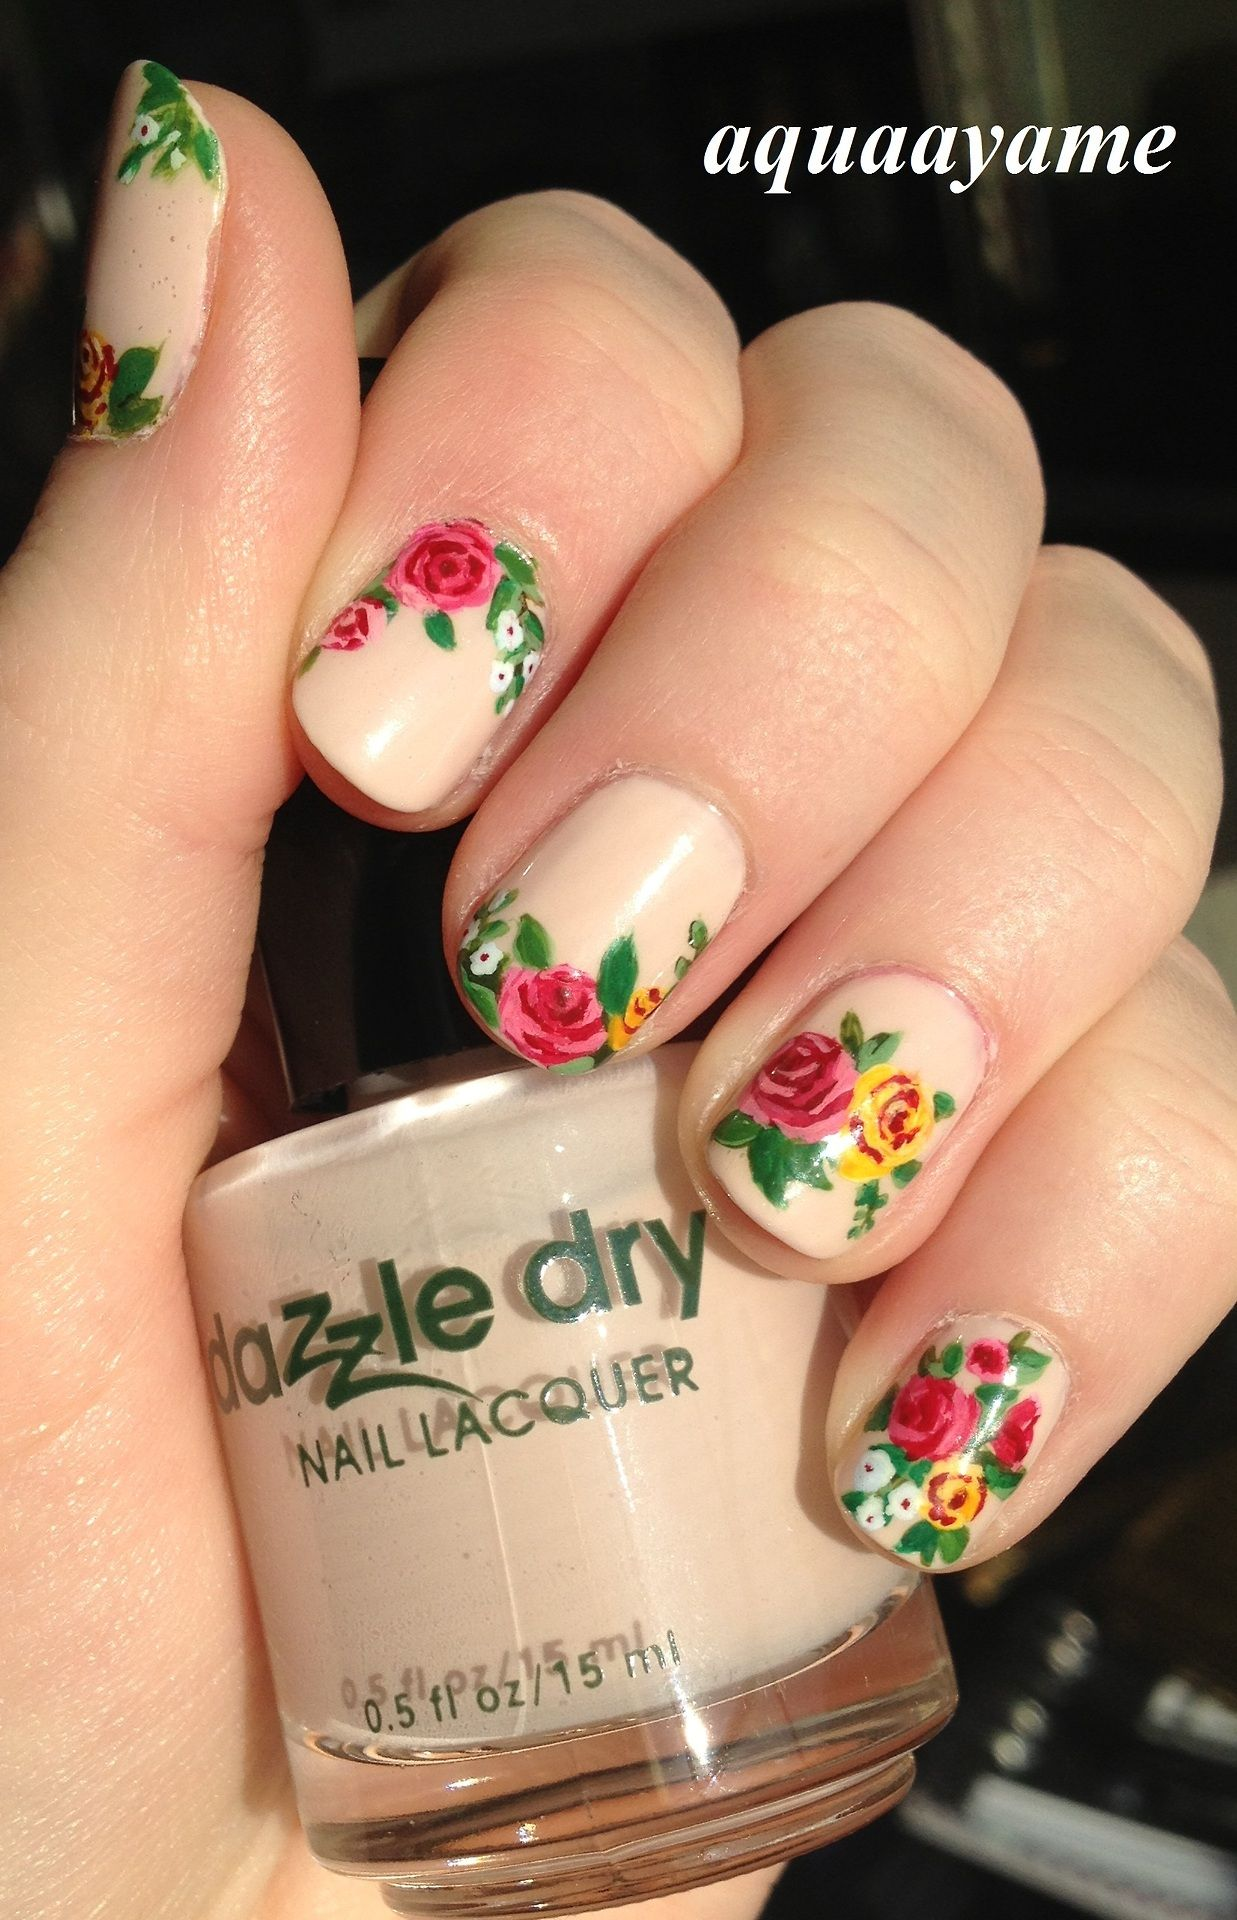 Top diy nail art ideas and products for 2018 izmirmasajfo